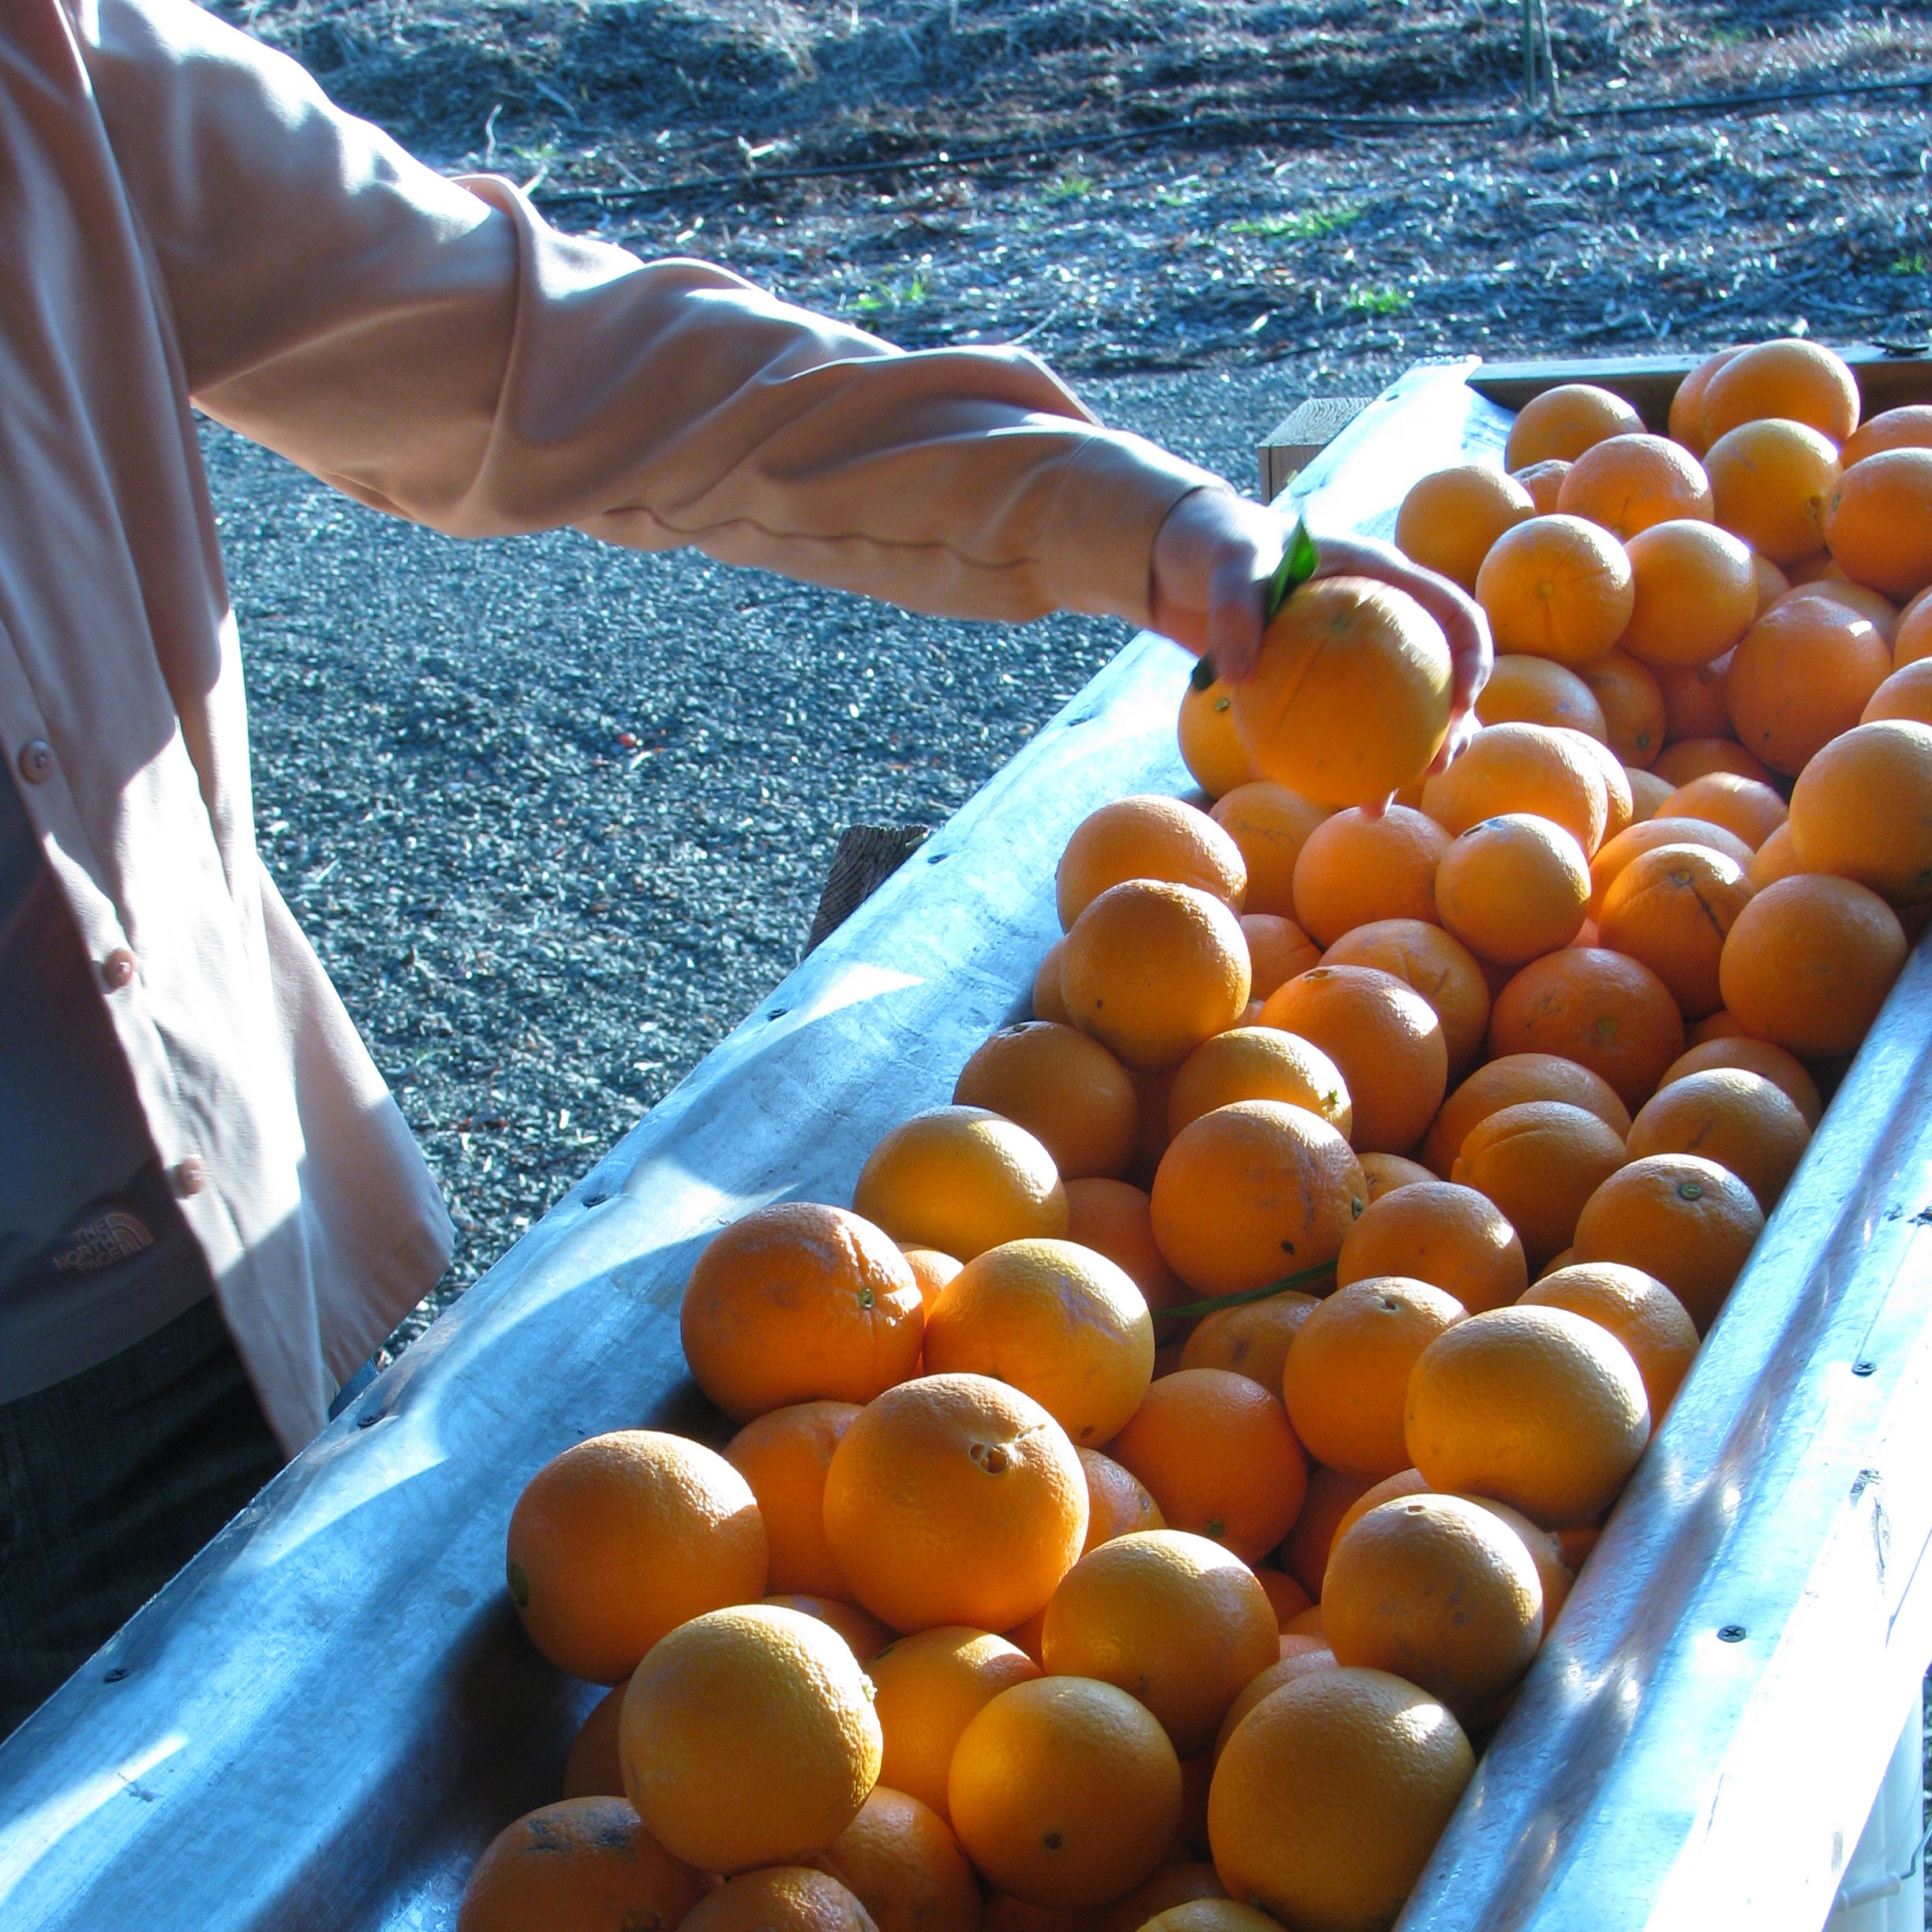 Oranges Getting Sorted